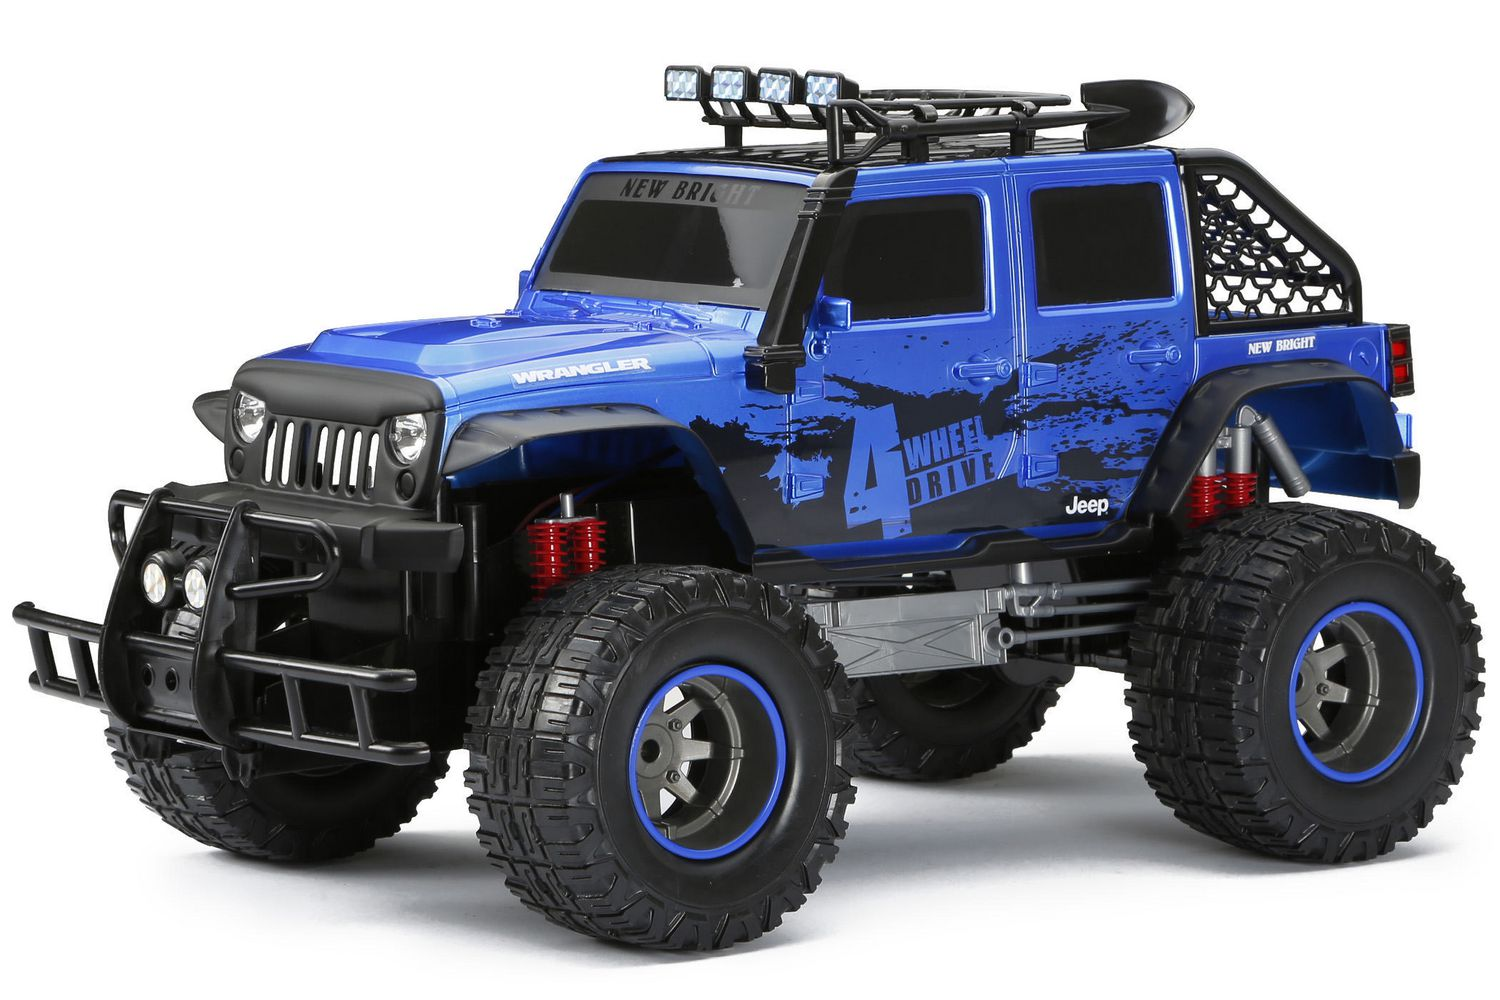 hight resolution of  jeep wrangler image 1 of 2 zoomed image